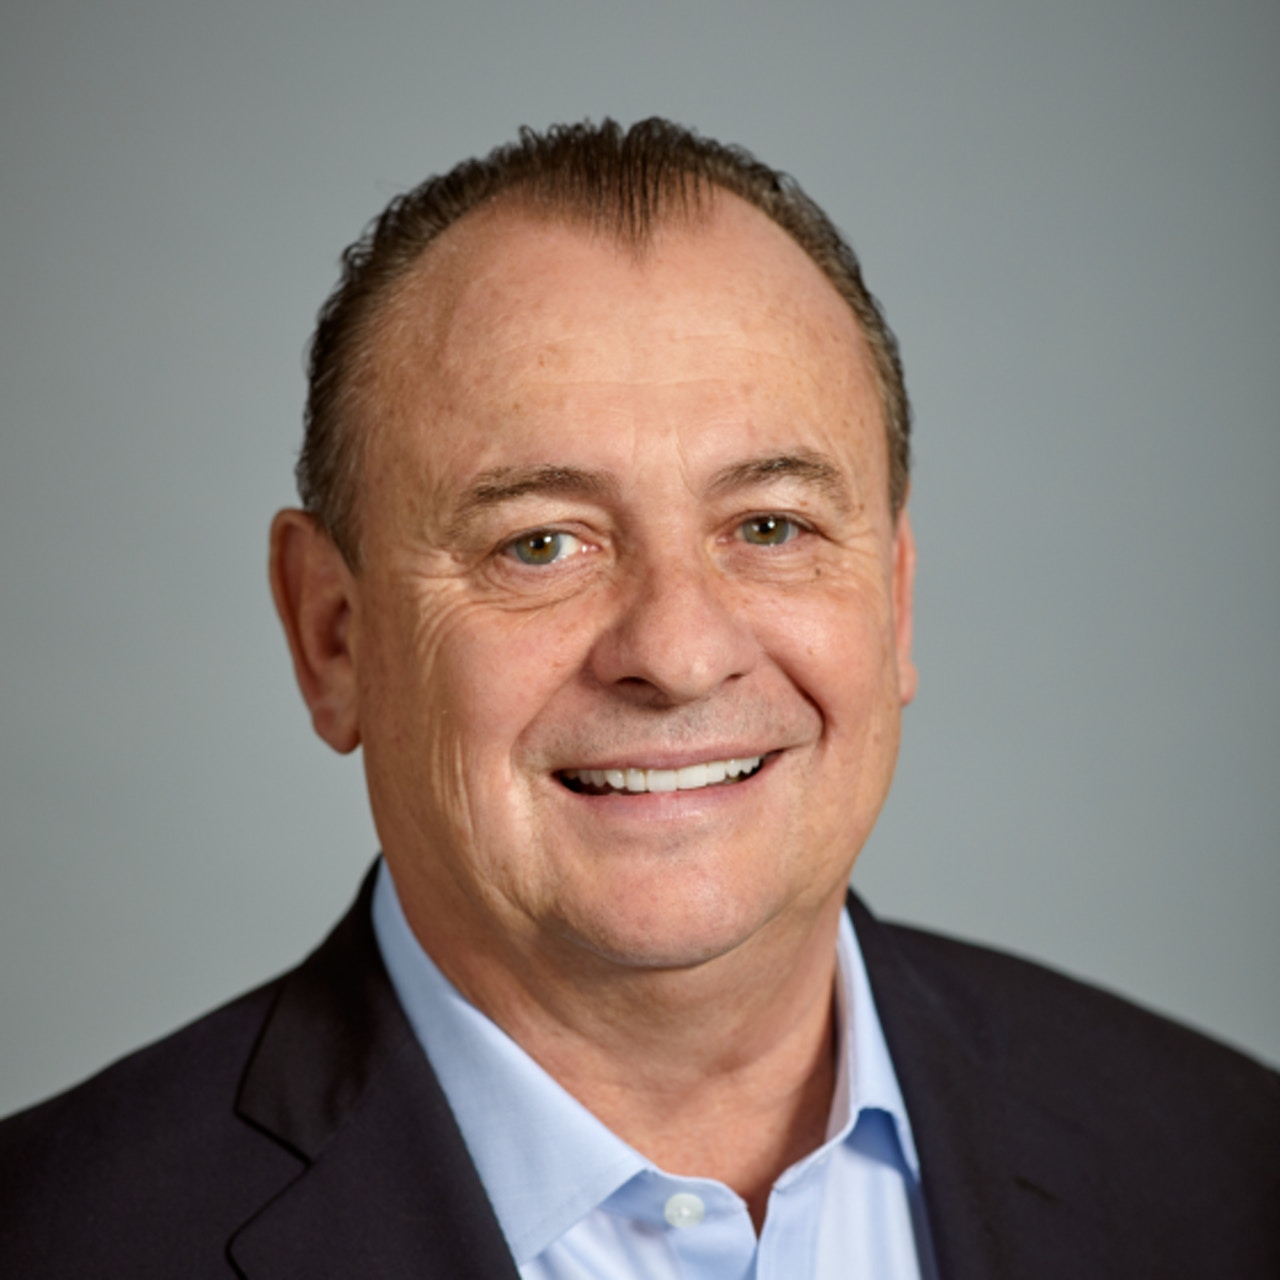 Simon Newman - Chief Executive Officer of MW Industries, Inc.